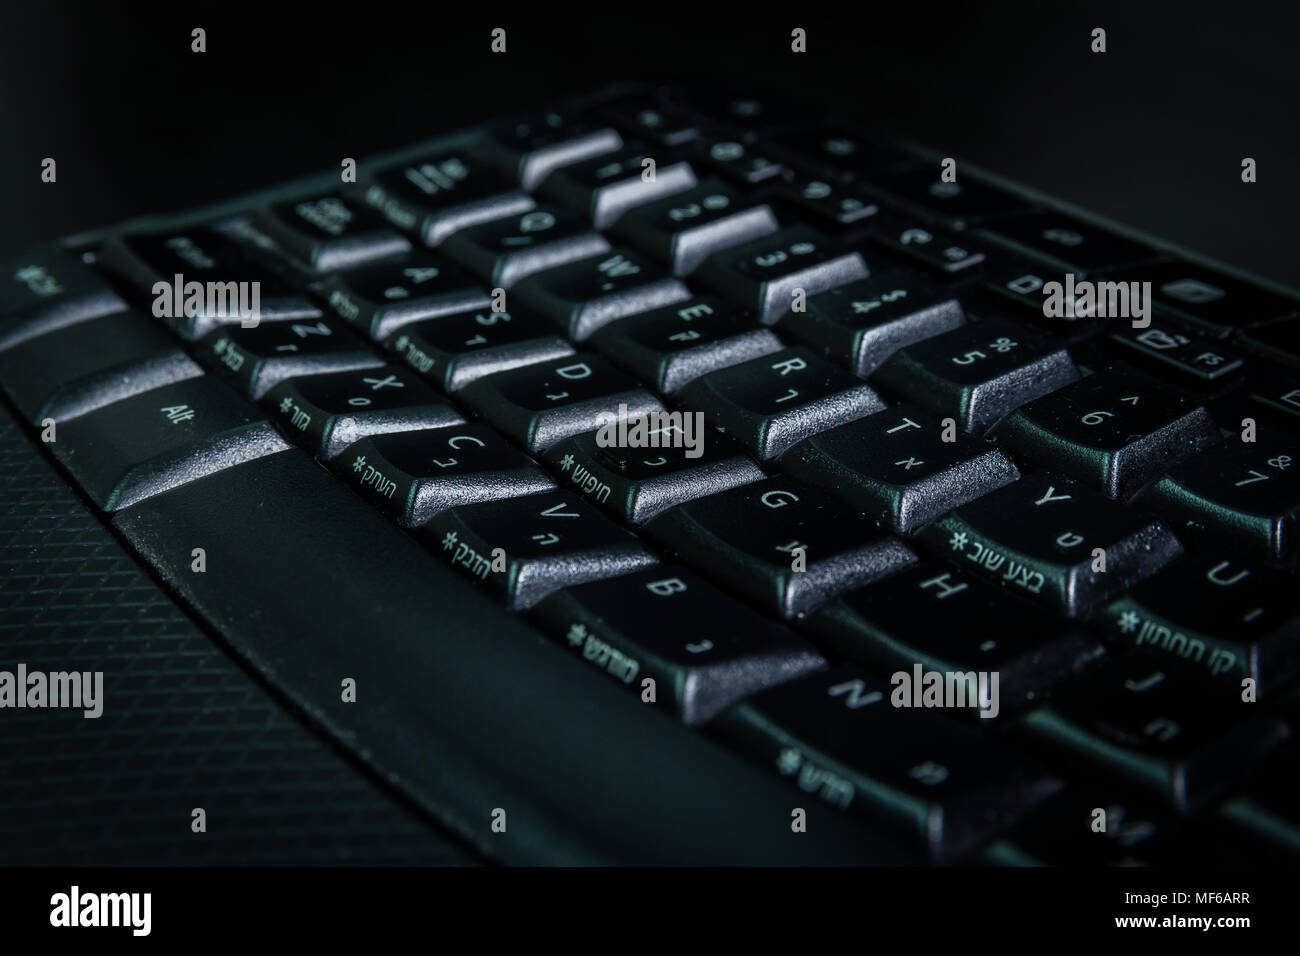 Keyboard with letters in Hebrew and English - Wireless keyboard - Close up - Dark atmosphere - Stock Image